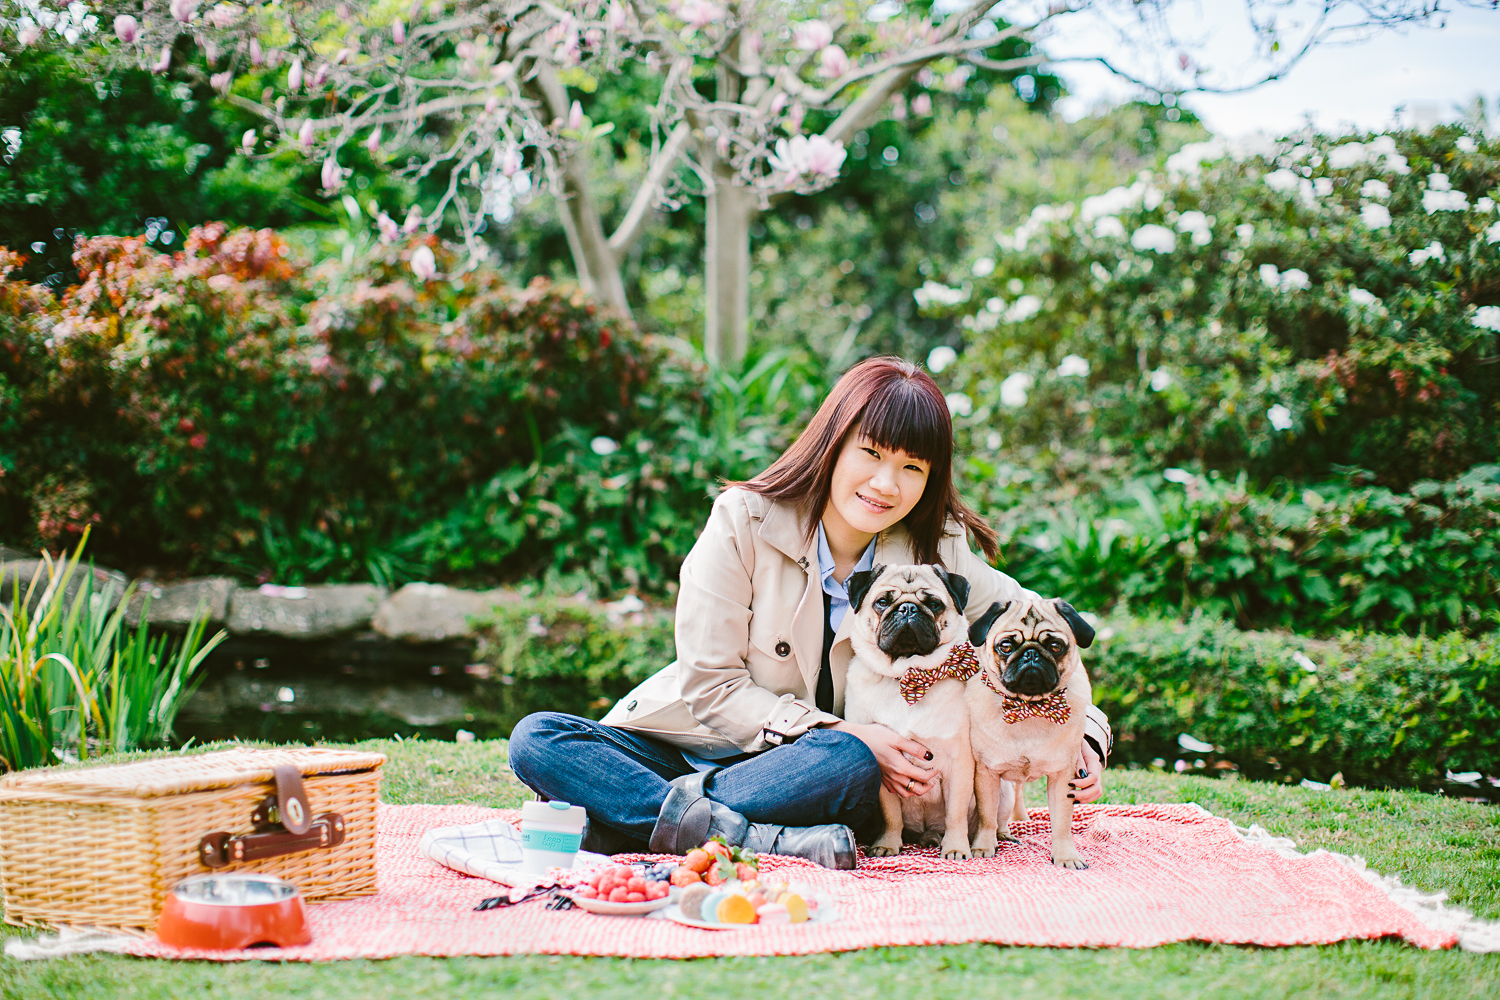 twoguineapigs_pet_photography_oh_jaffa_picnic_pugs_1500-6.jpg